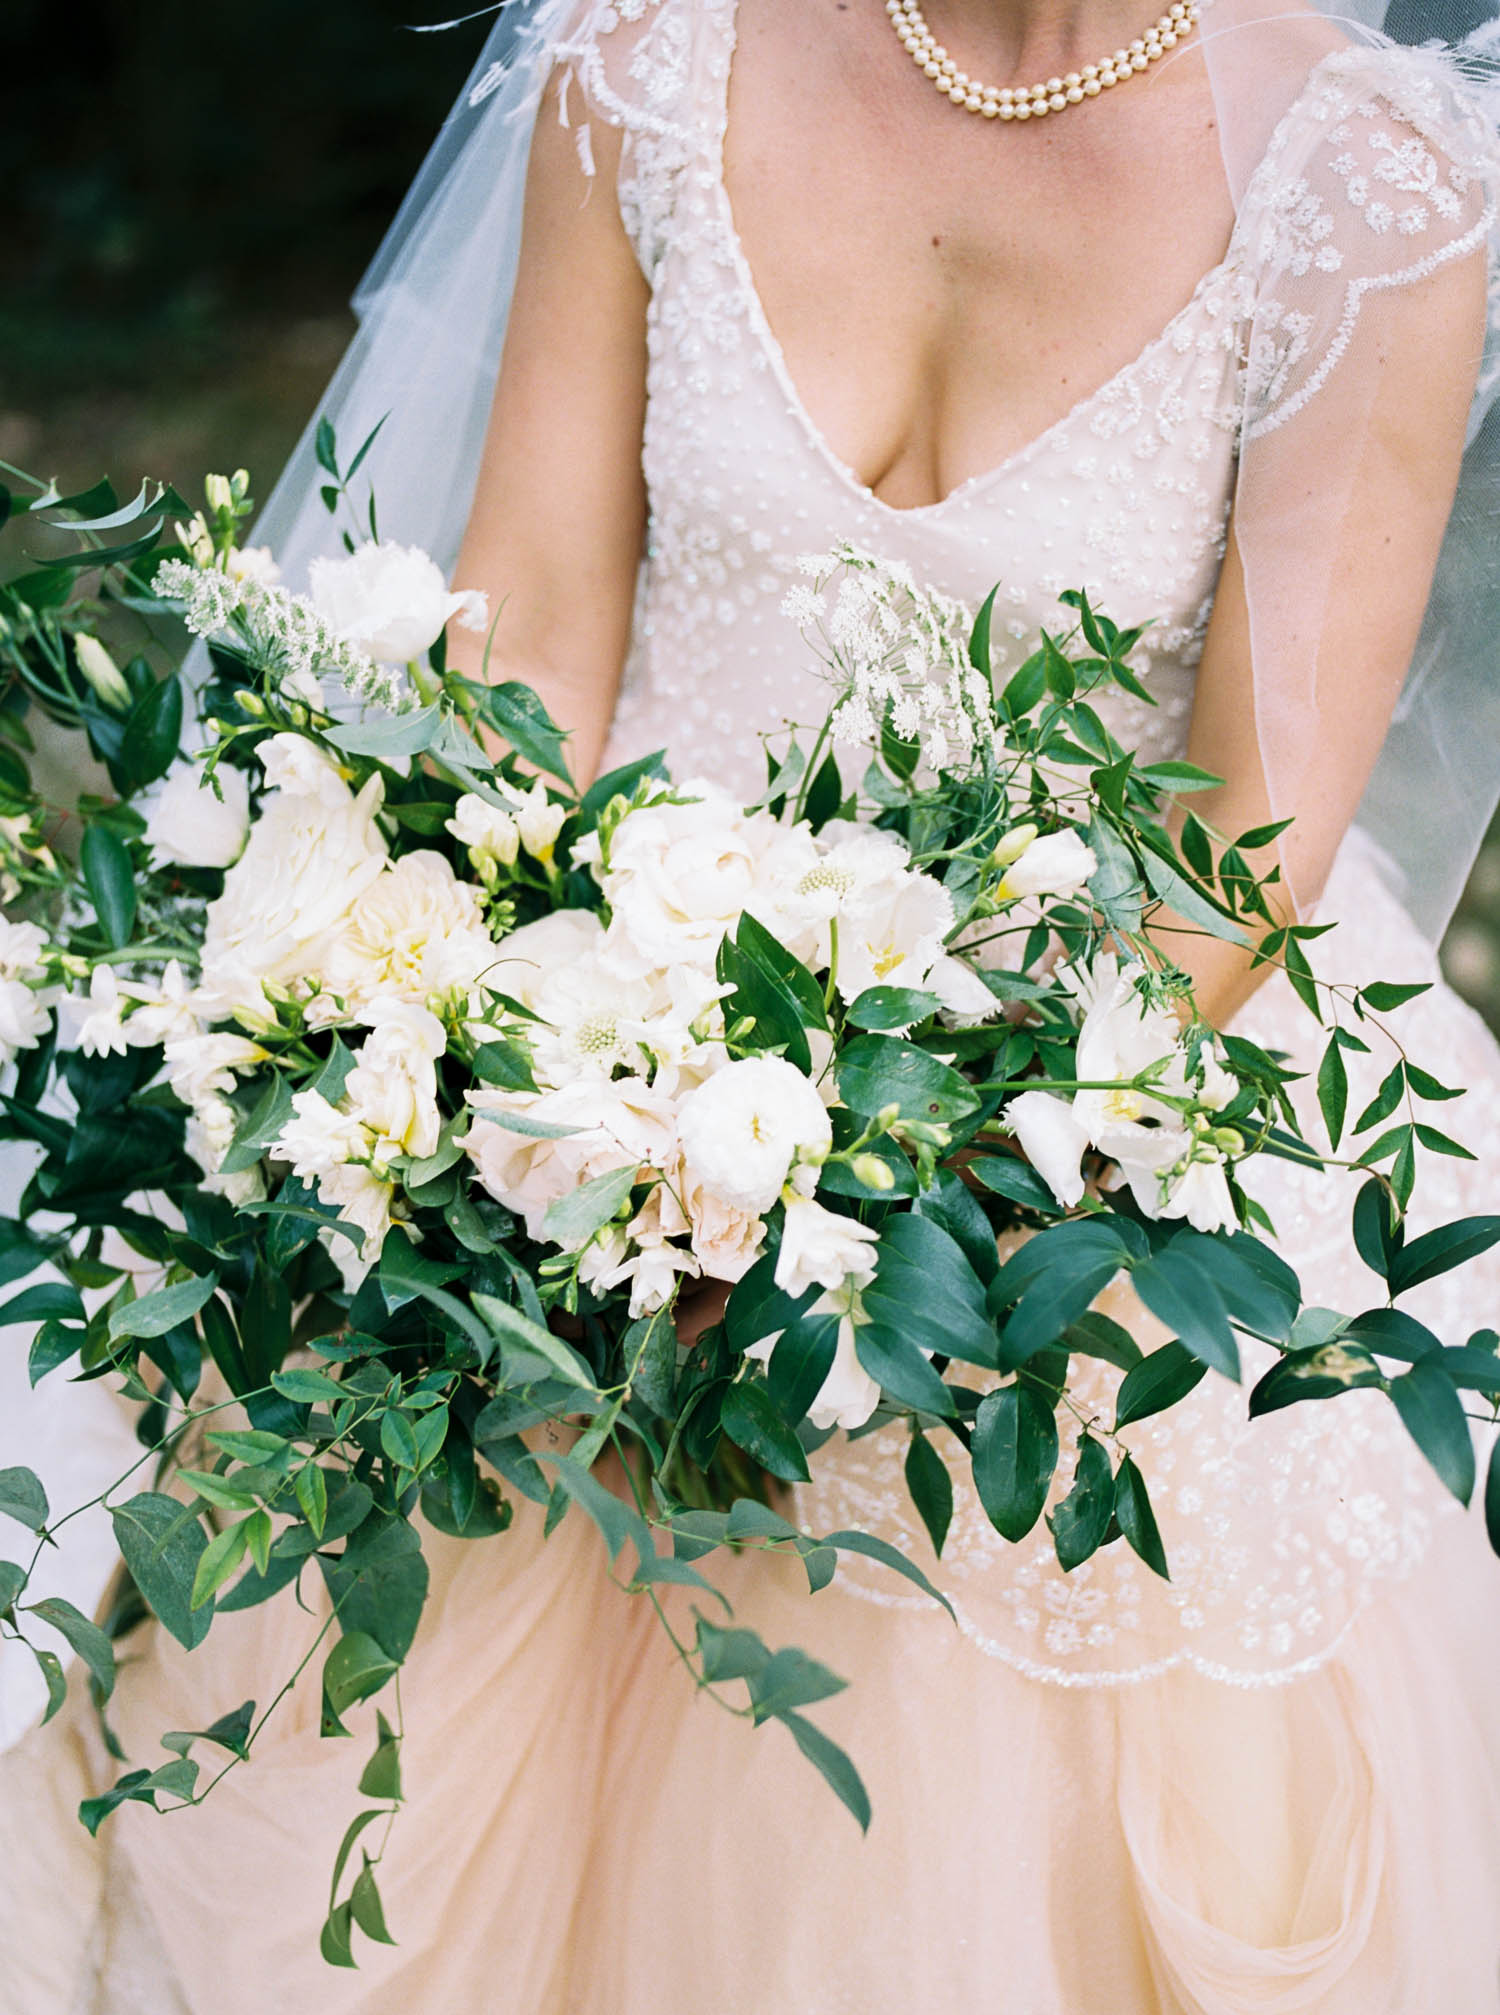 Garden-inspired bridal bouquet with garden roses, ranunculus, and lush, trailing greenery. Nashville Wedding Floral Design.